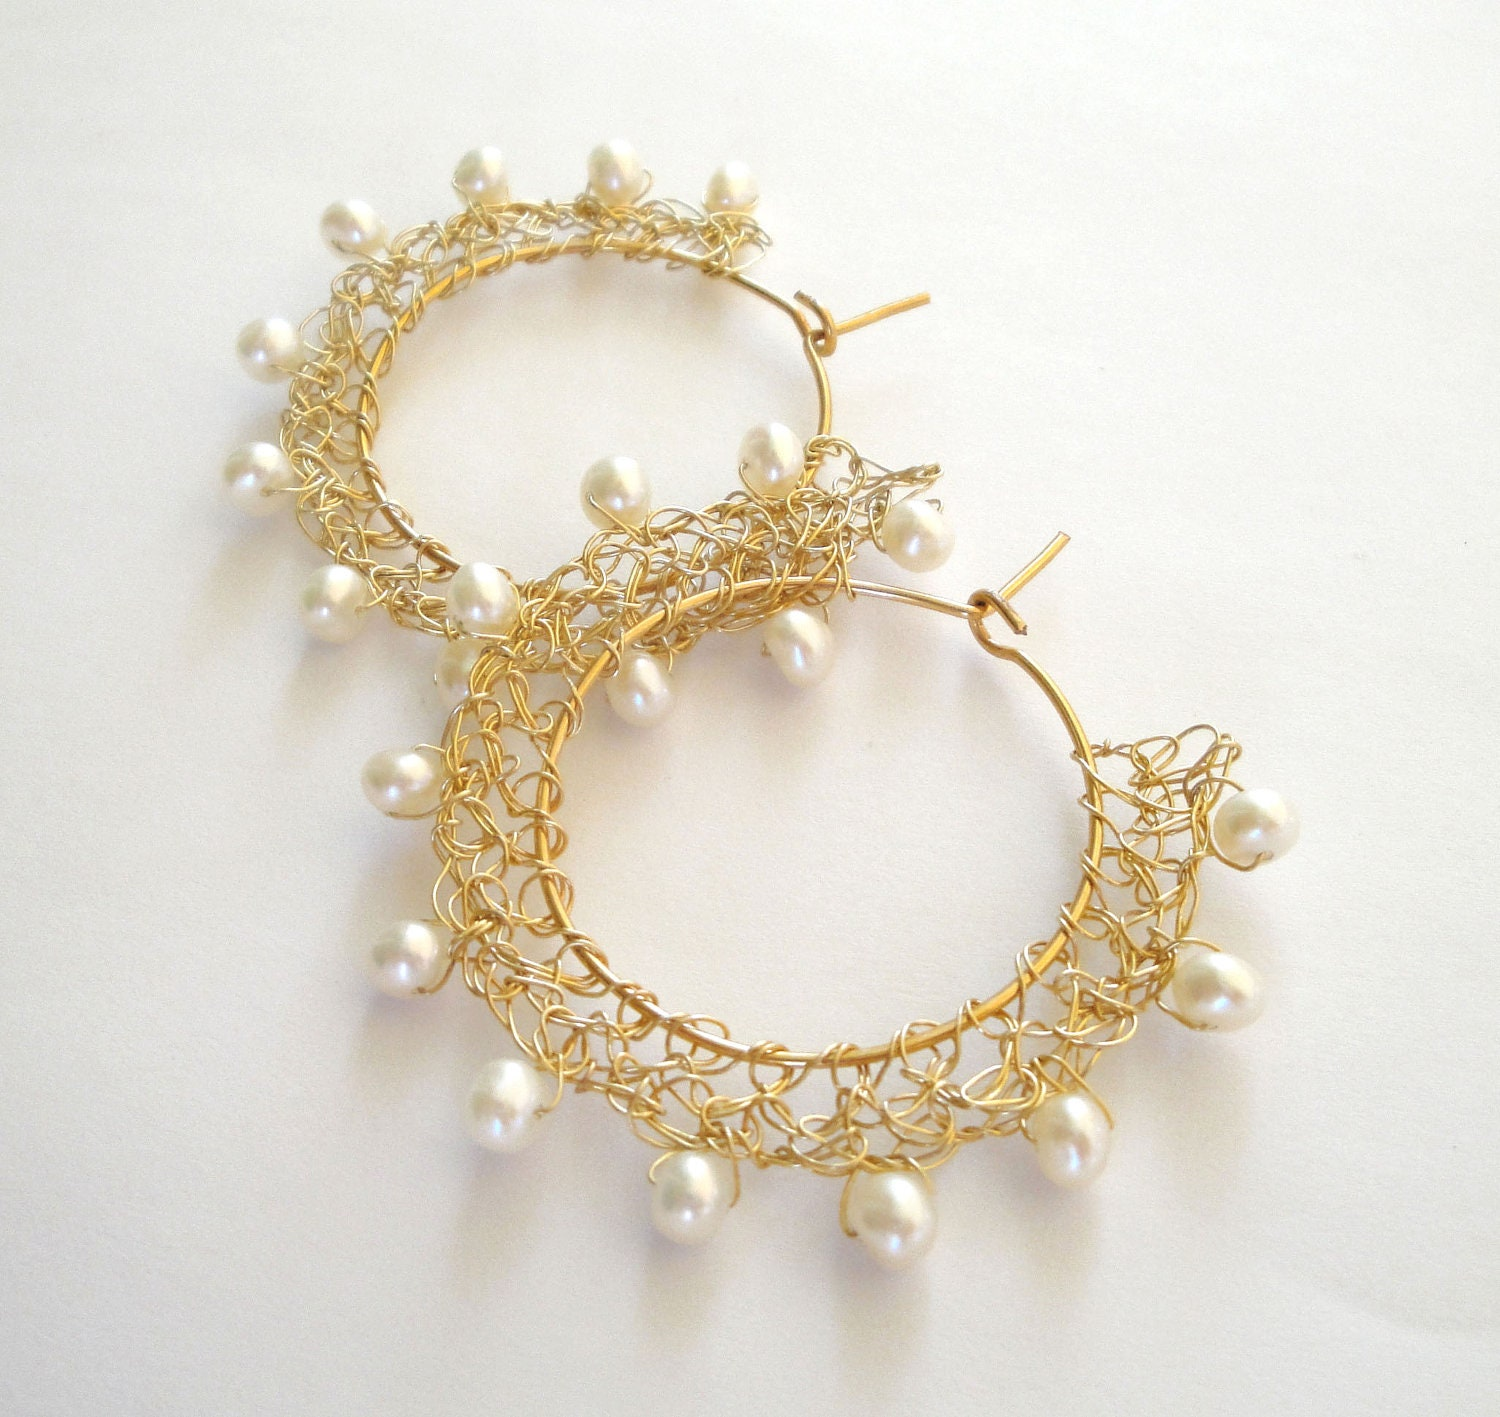 Crochet Earrings : gold wire crochet earrings bridal wedding pearl by katerinaki1977